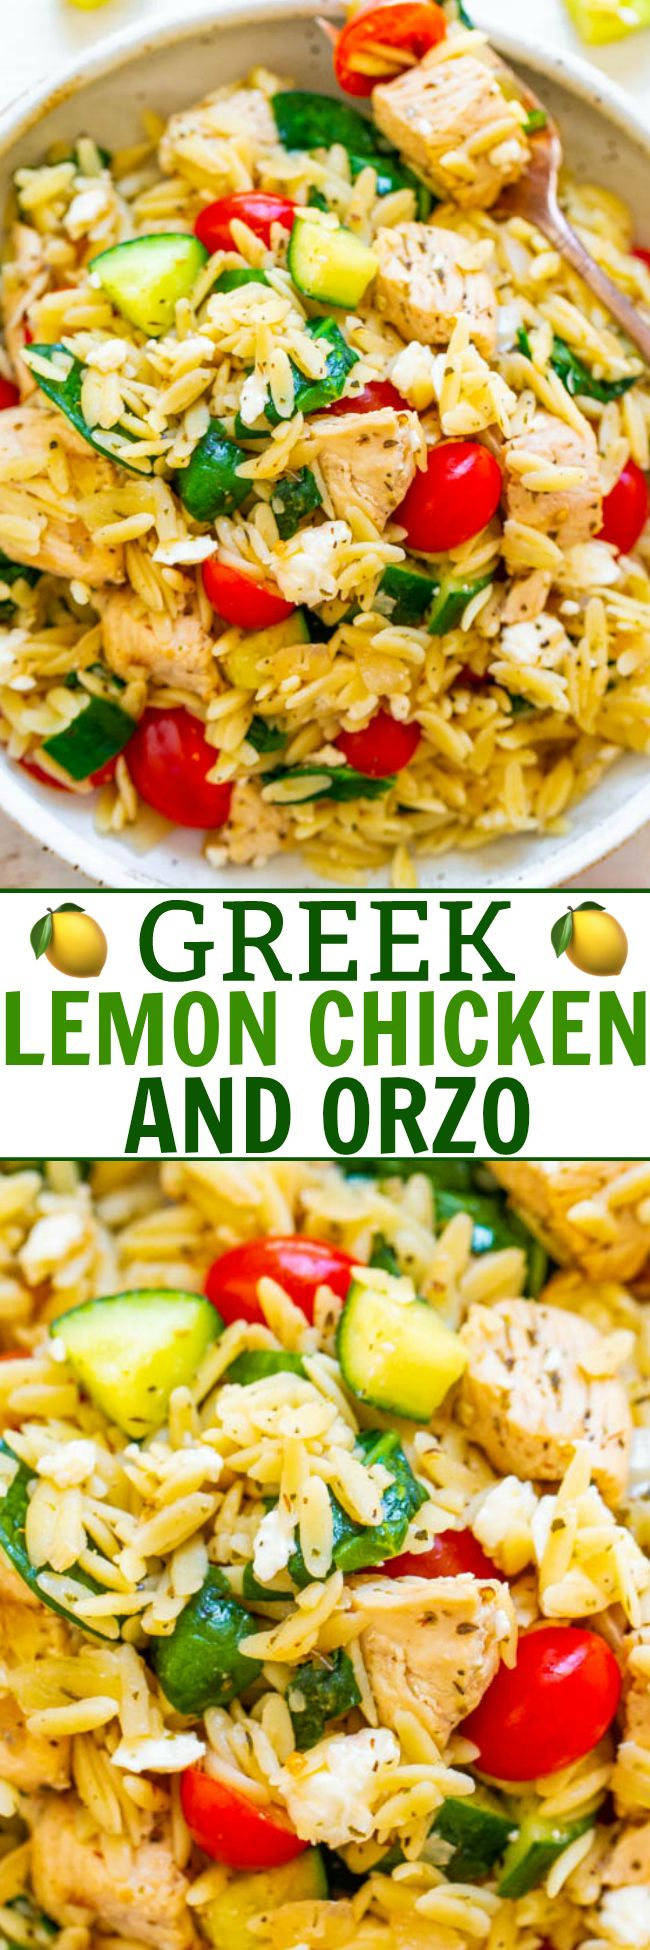 Greek Lemon Chicken and Orzo - Averie Cooks